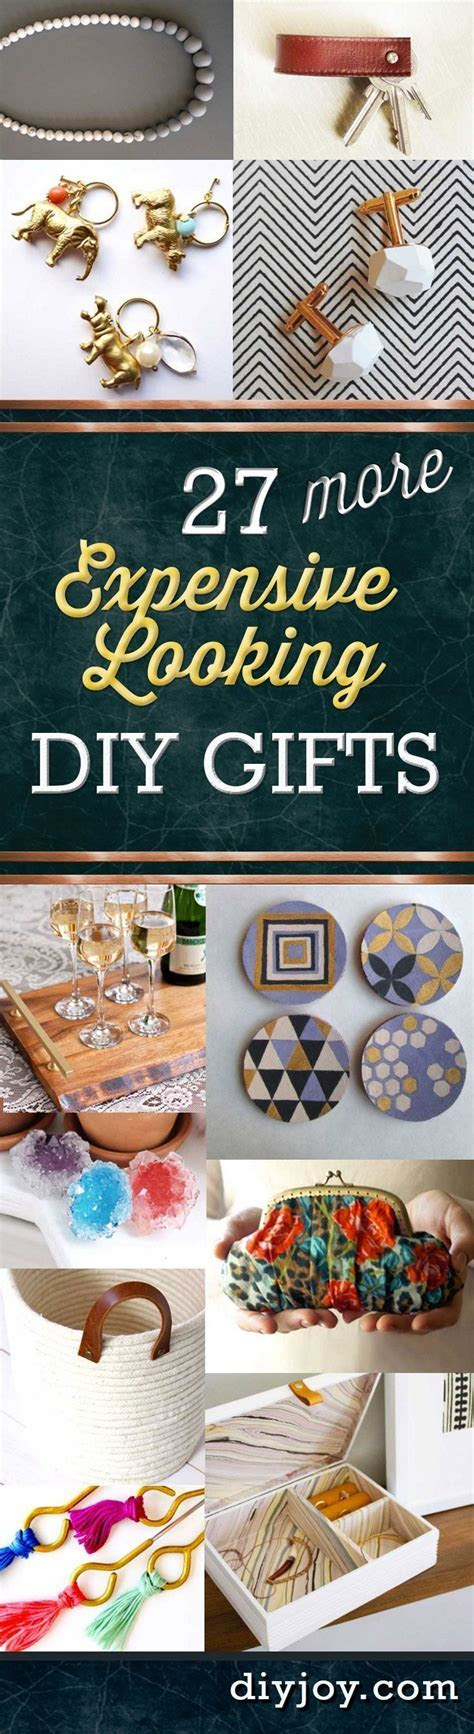 27 MORE Expensive Looking Inexpensive Gifts   Cool DIY